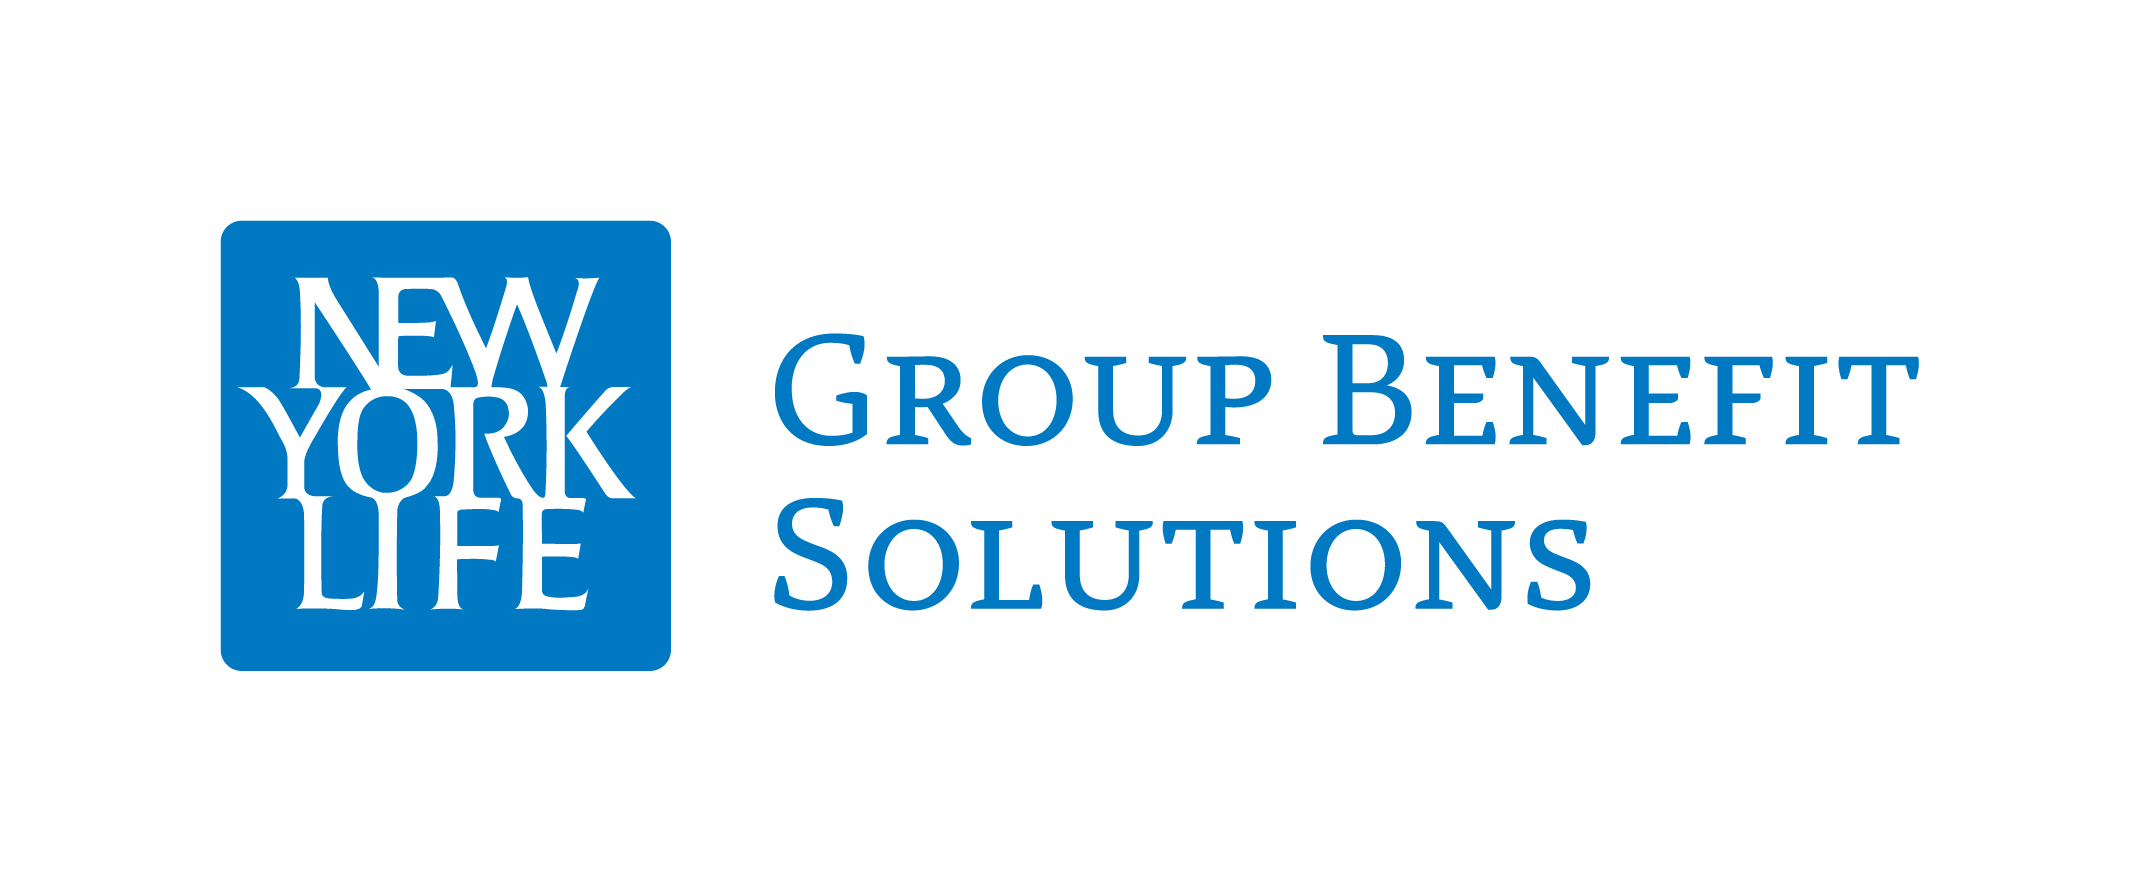 New York Life group benefit solutions